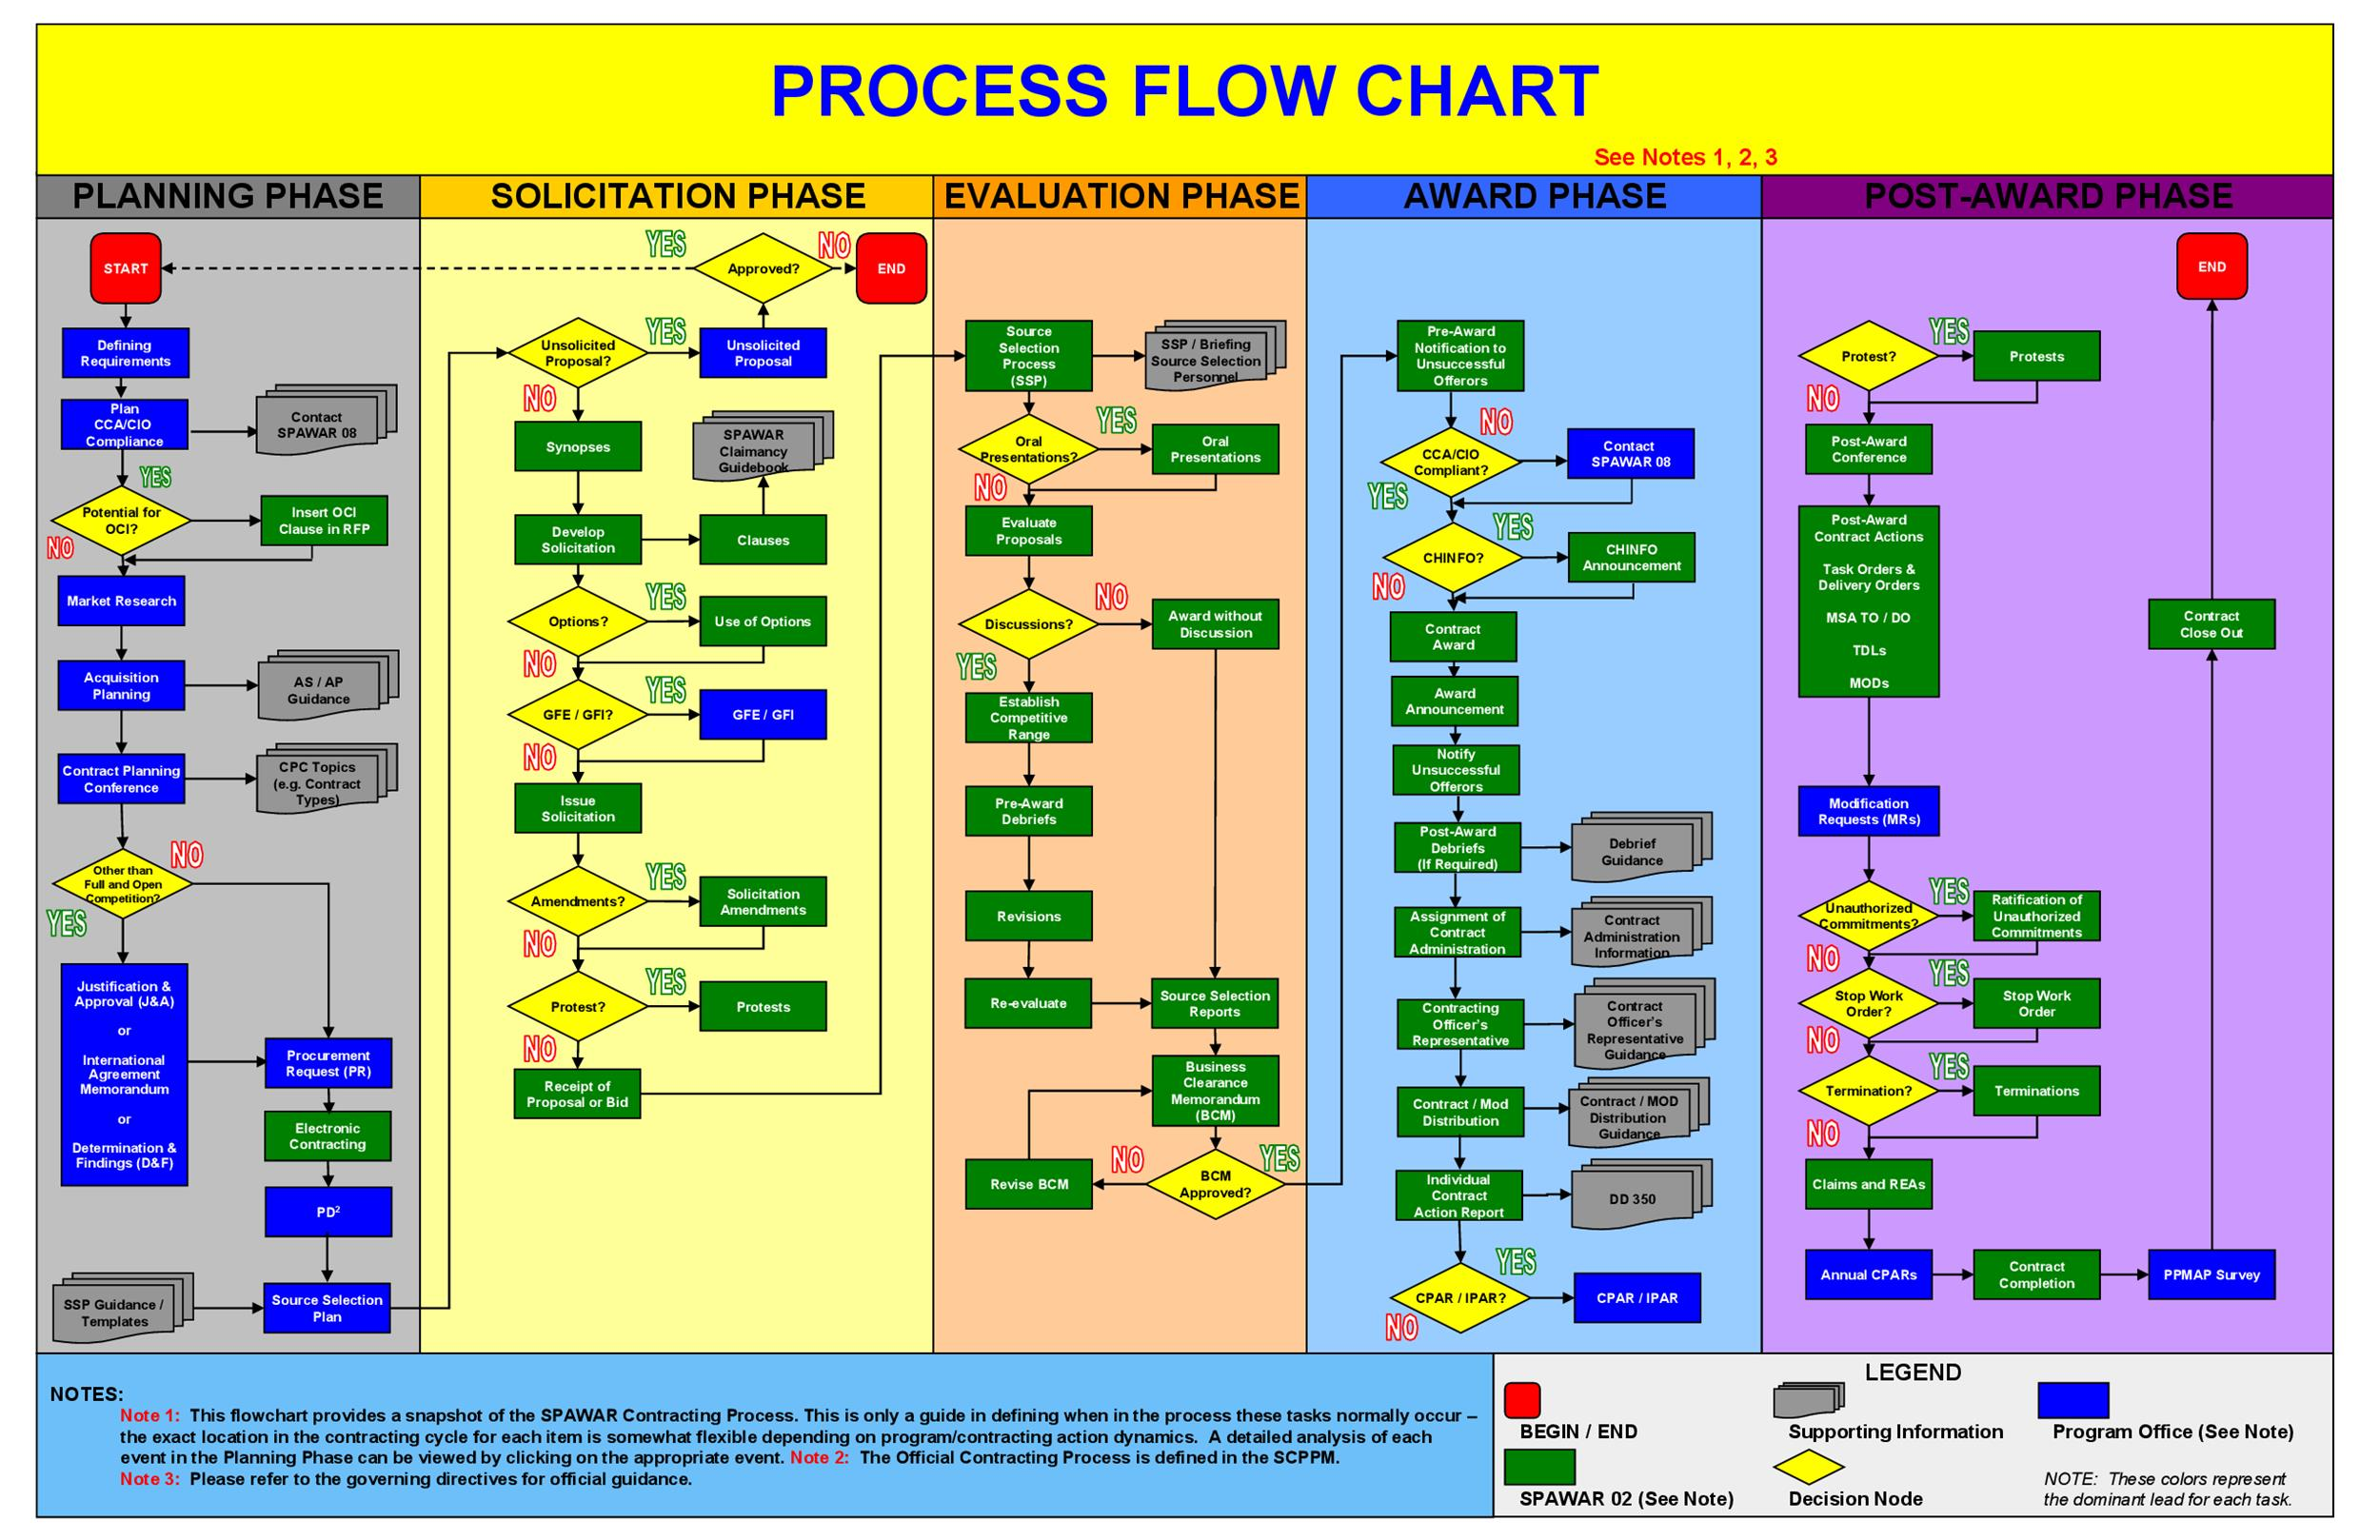 40 Fantastic Flow Chart Templates Word Excel Power Point – Process Flow in Word